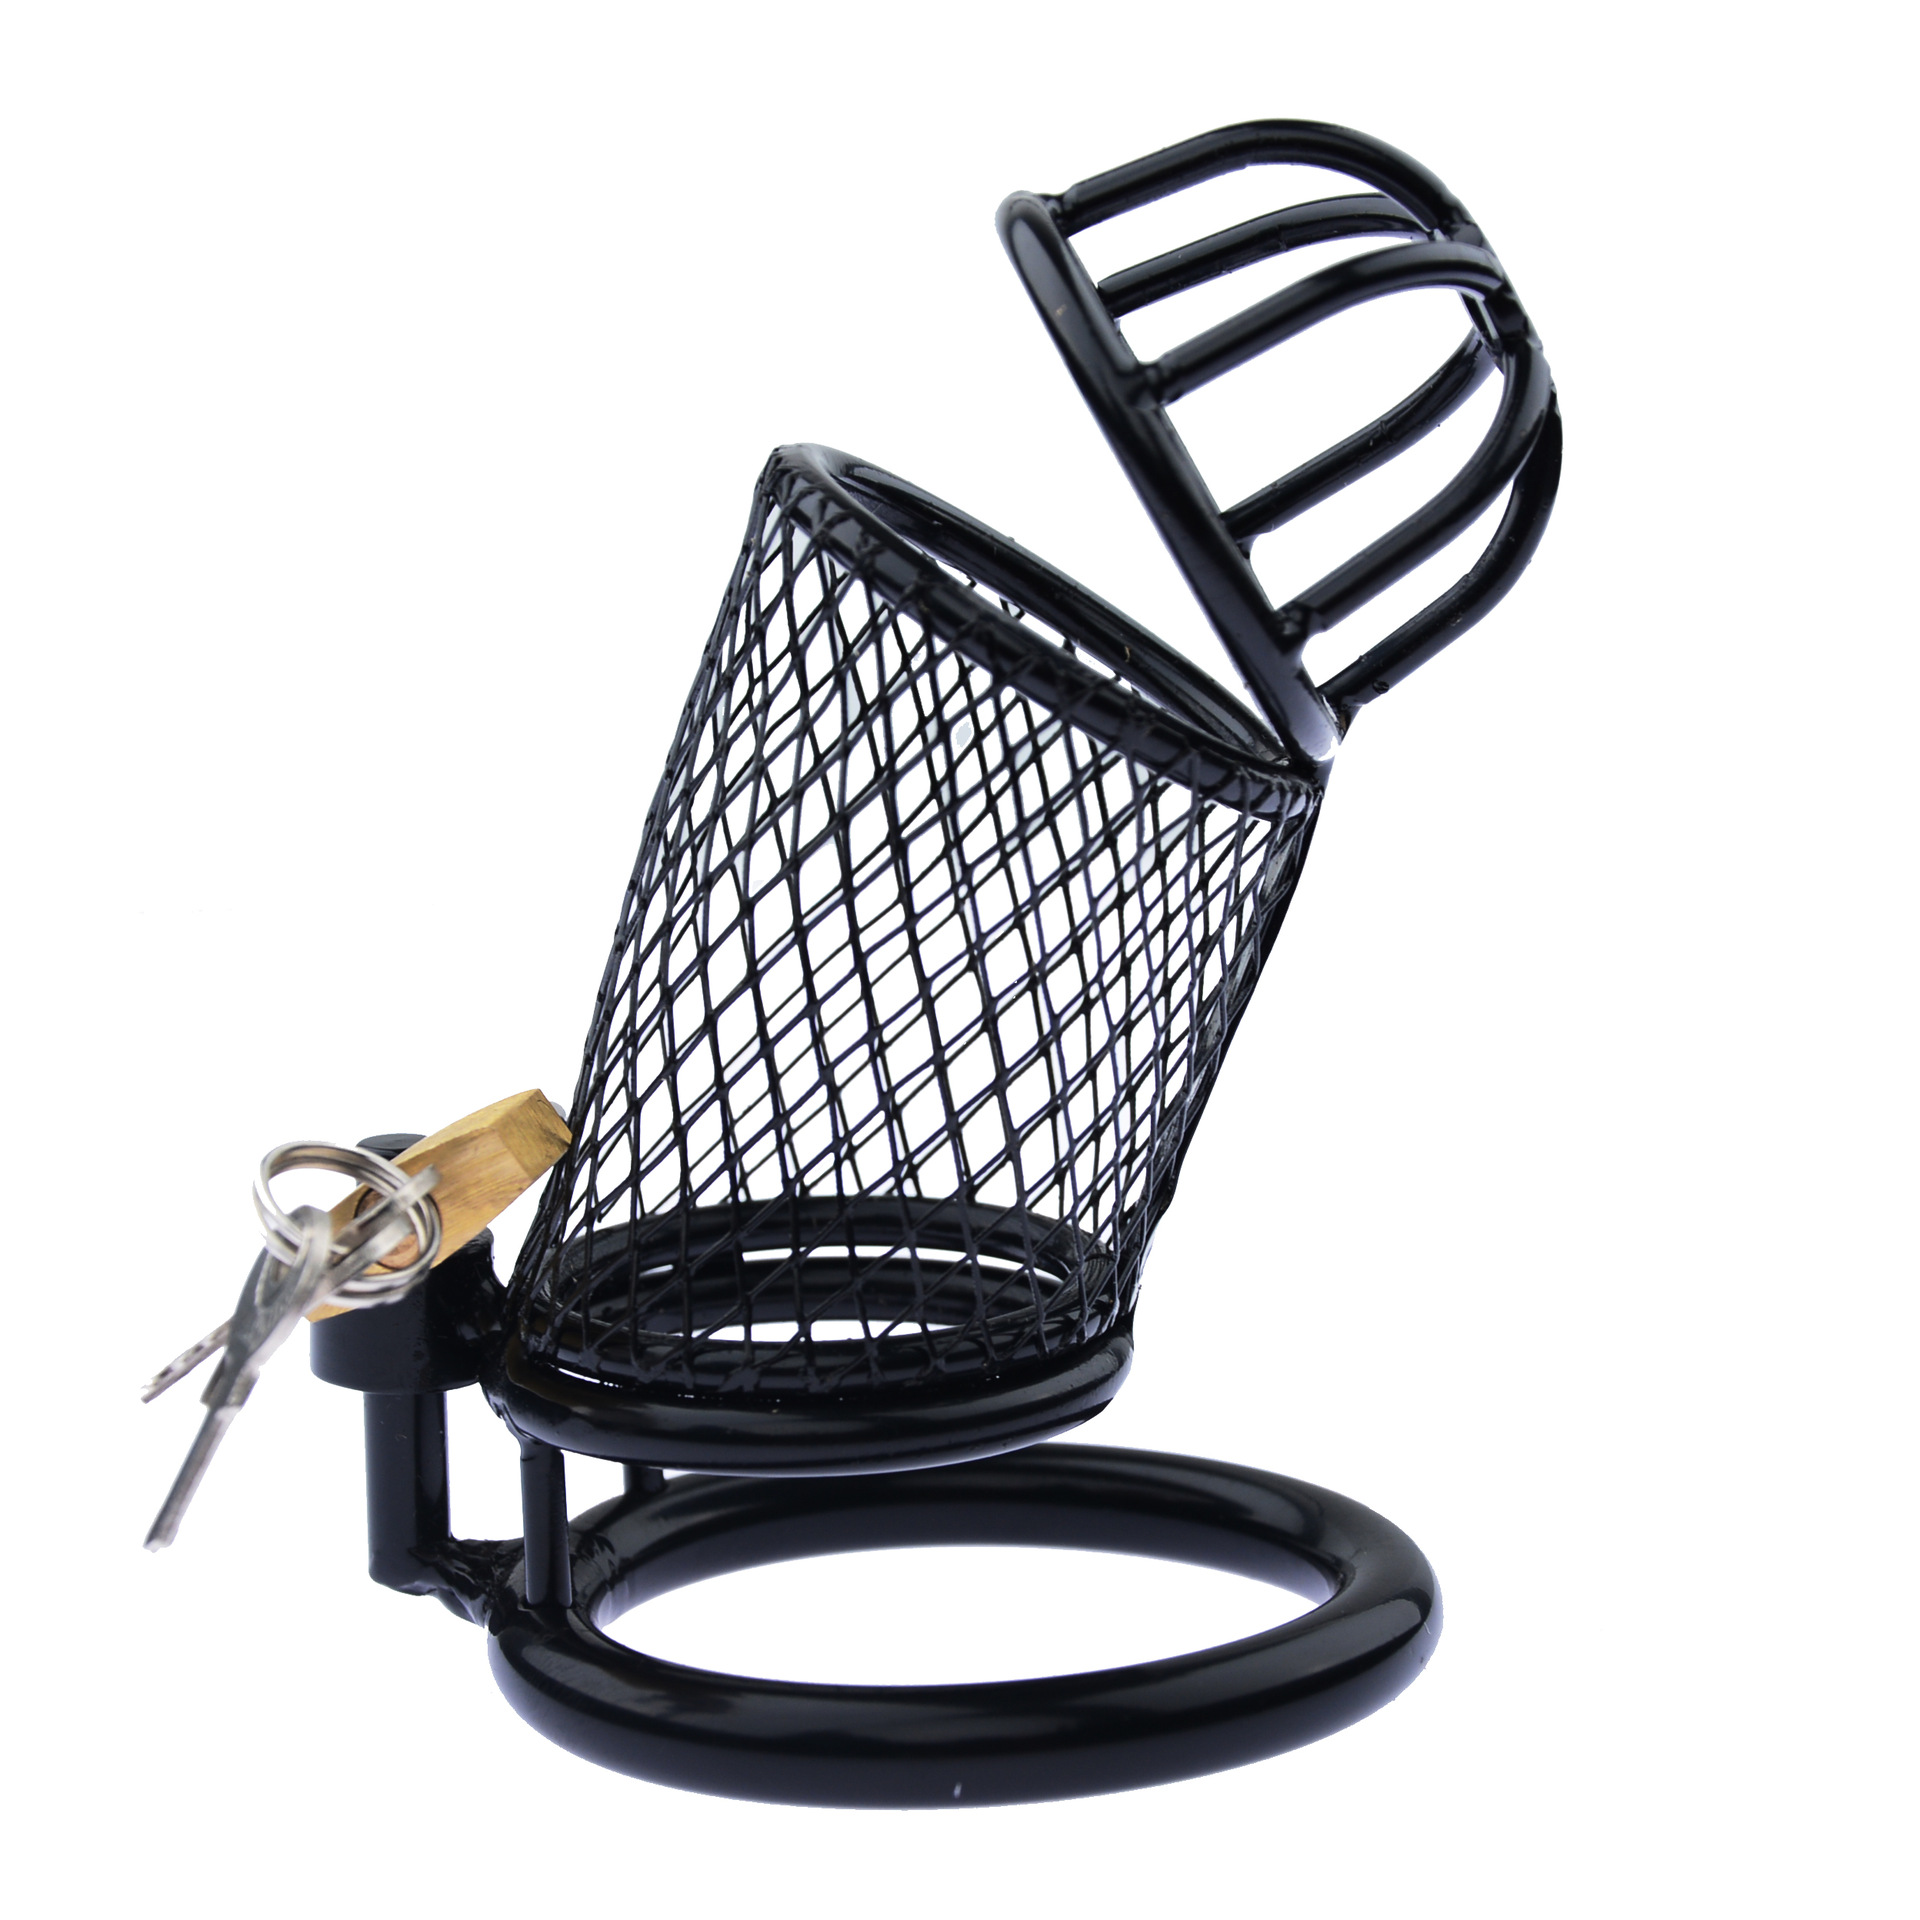 Black Iron Plating Penis <font><b>Rings</b></font> Metal Mesh Chastity Lock Male Cock Cage Device Men Adult Game Outdoor Hidden <font><b>Sex</b></font> <font><b>Toys</b></font> SM Products image